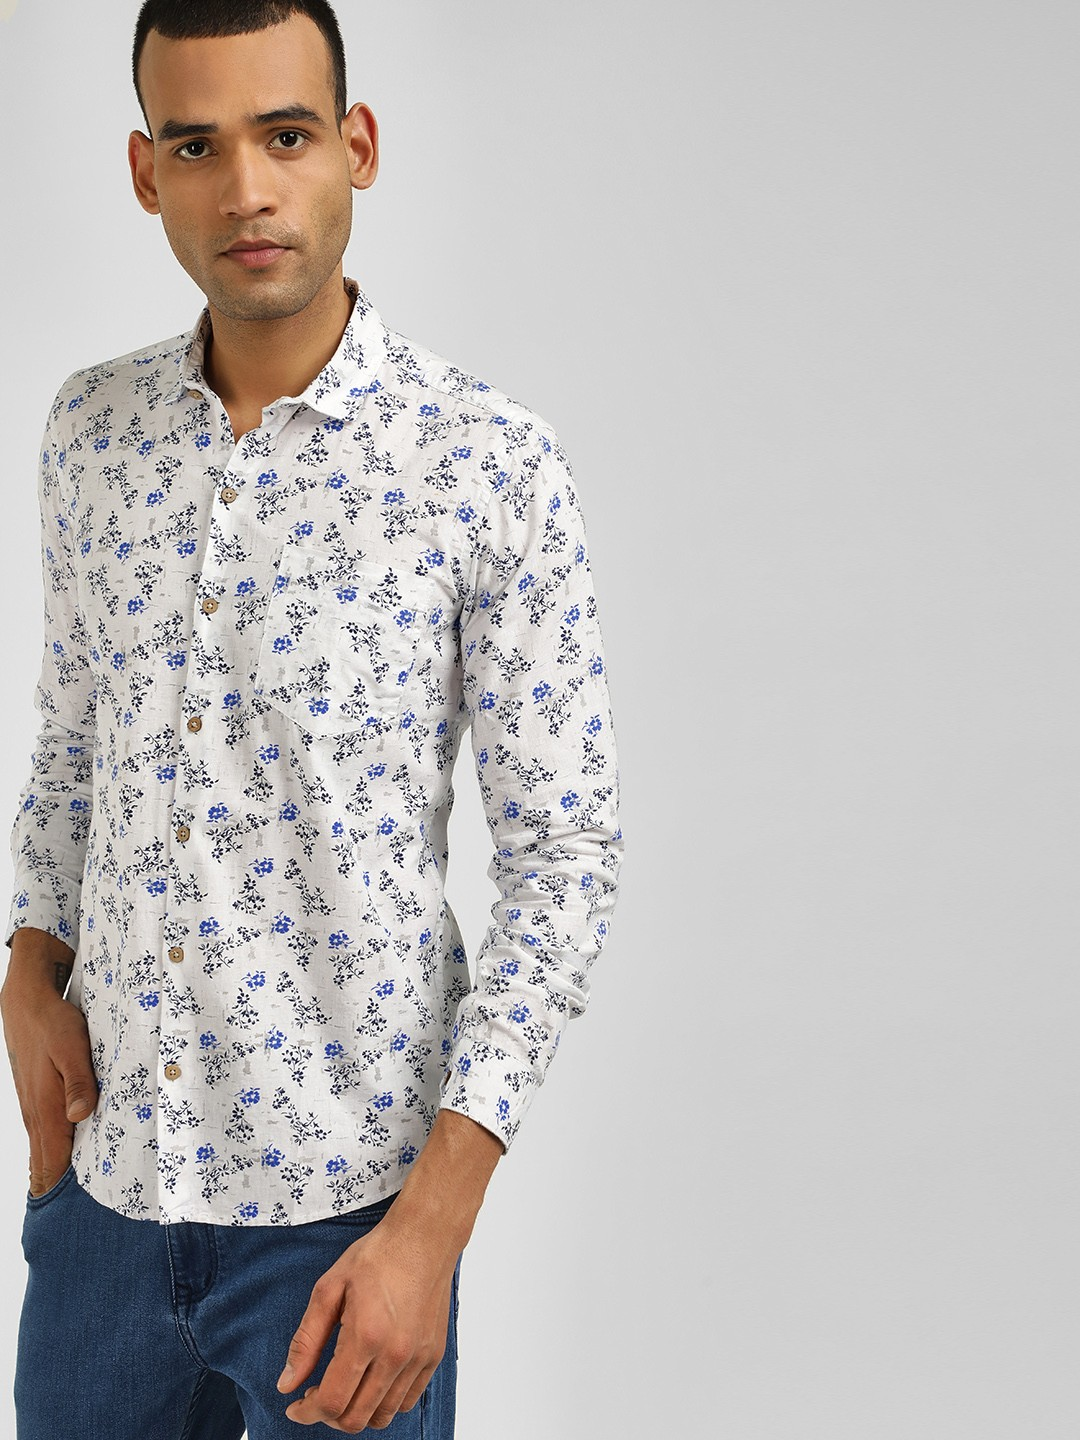 AMON White Casual Printed Shirt 1